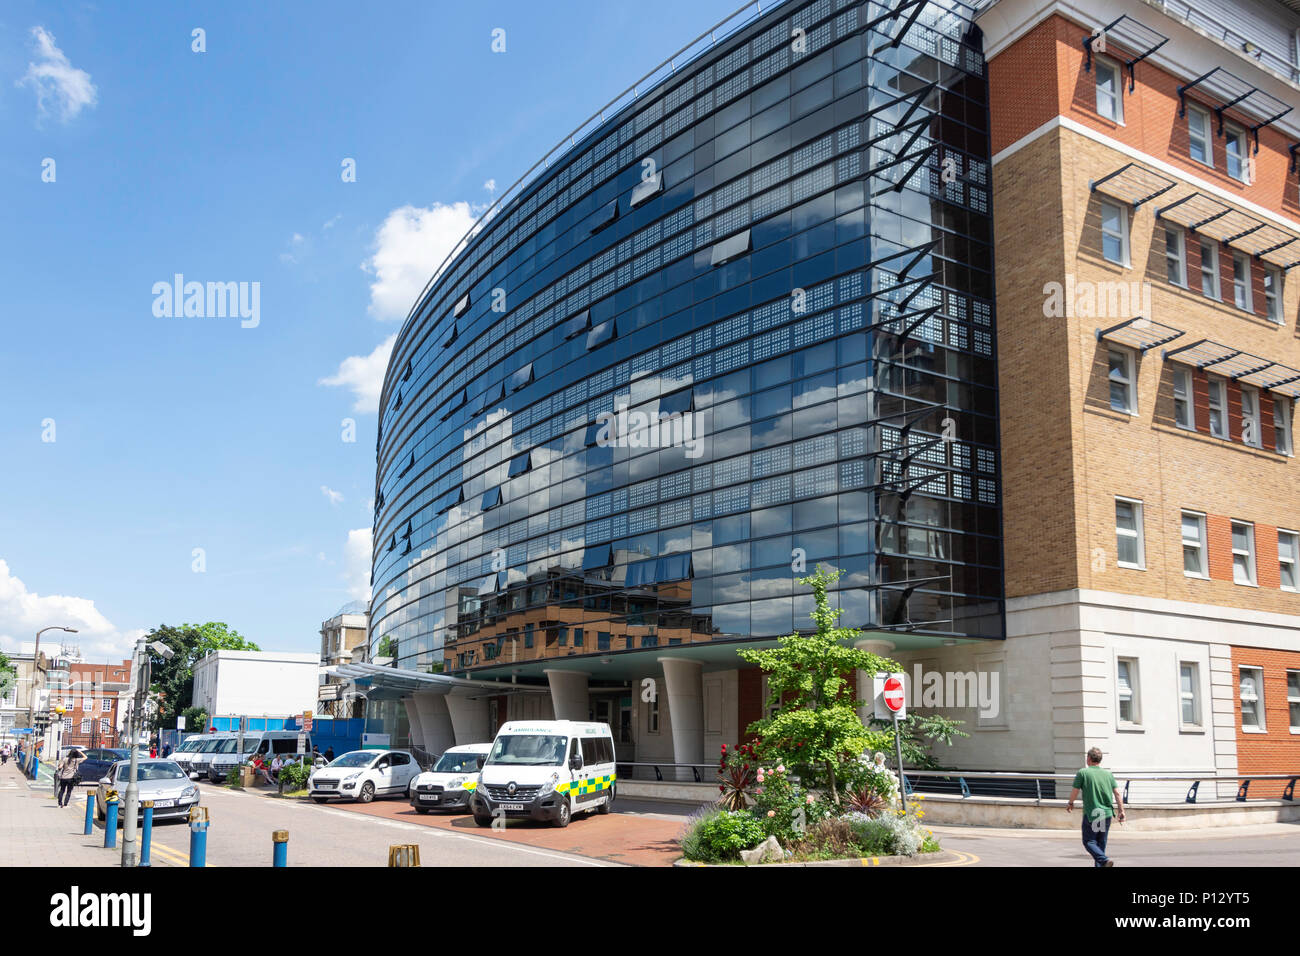 Entrance to Golden Jubilee Wing at King's College Hospital, Denmark Hill, Camberwell, London Borough of Southwark, London, England, United Kingdom - Stock Image